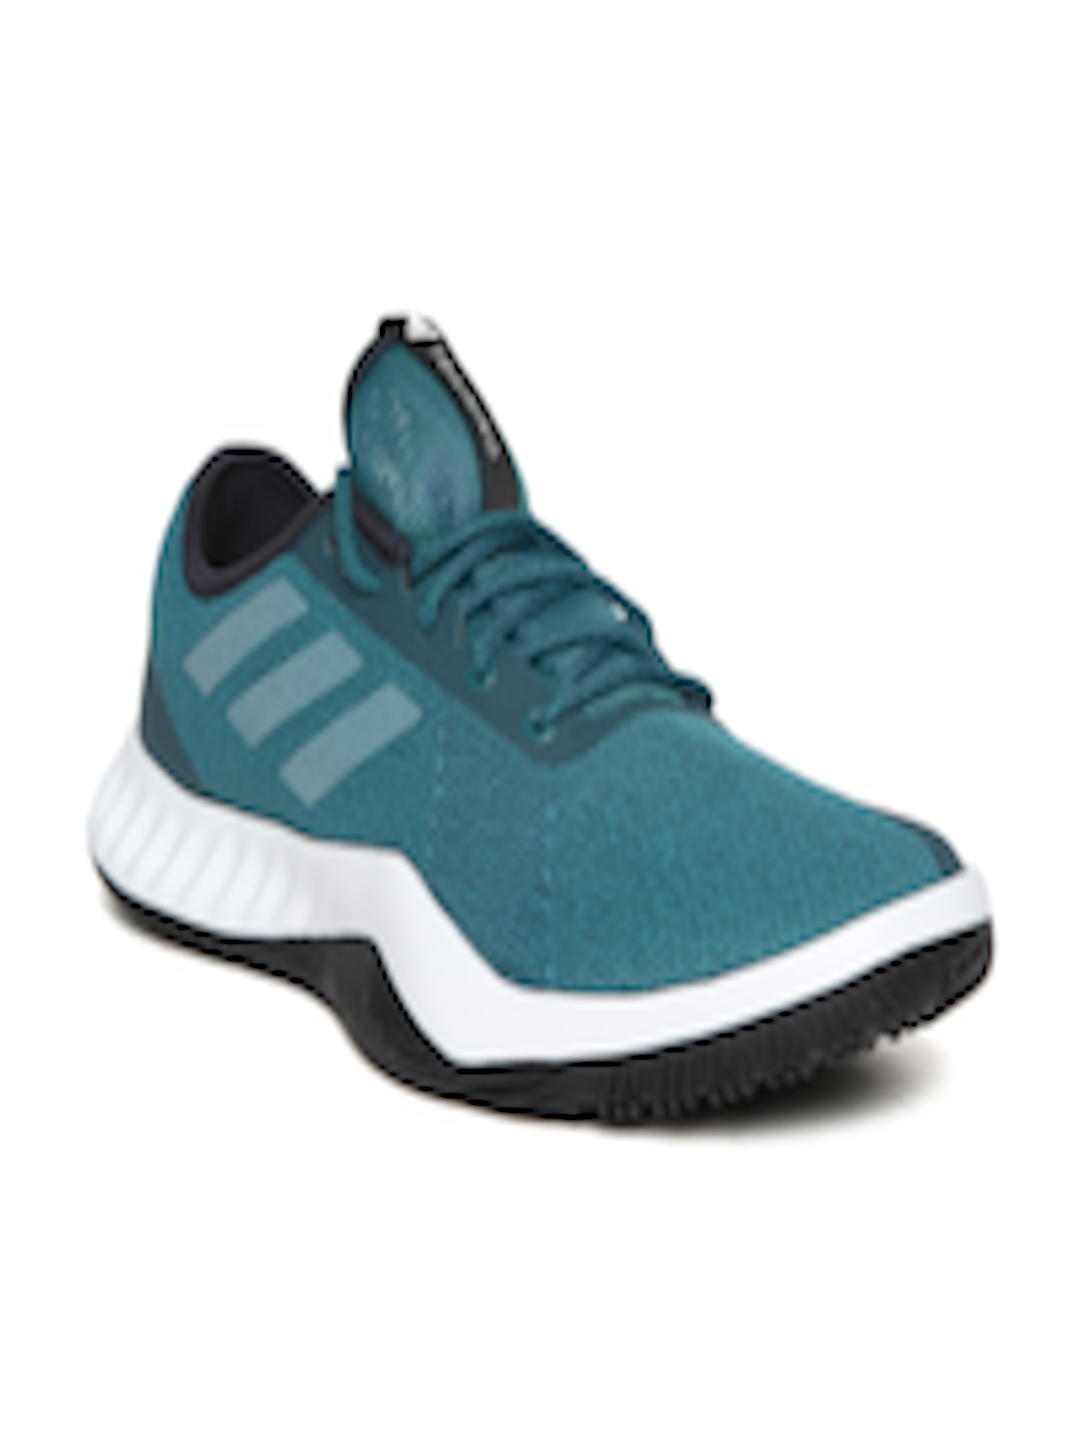 timeless design b7f38 88422 Buy ADIDAS Men Teal Green Crazytrain LT Training Shoes - Sports Shoes for  Men 2410048  Myntra